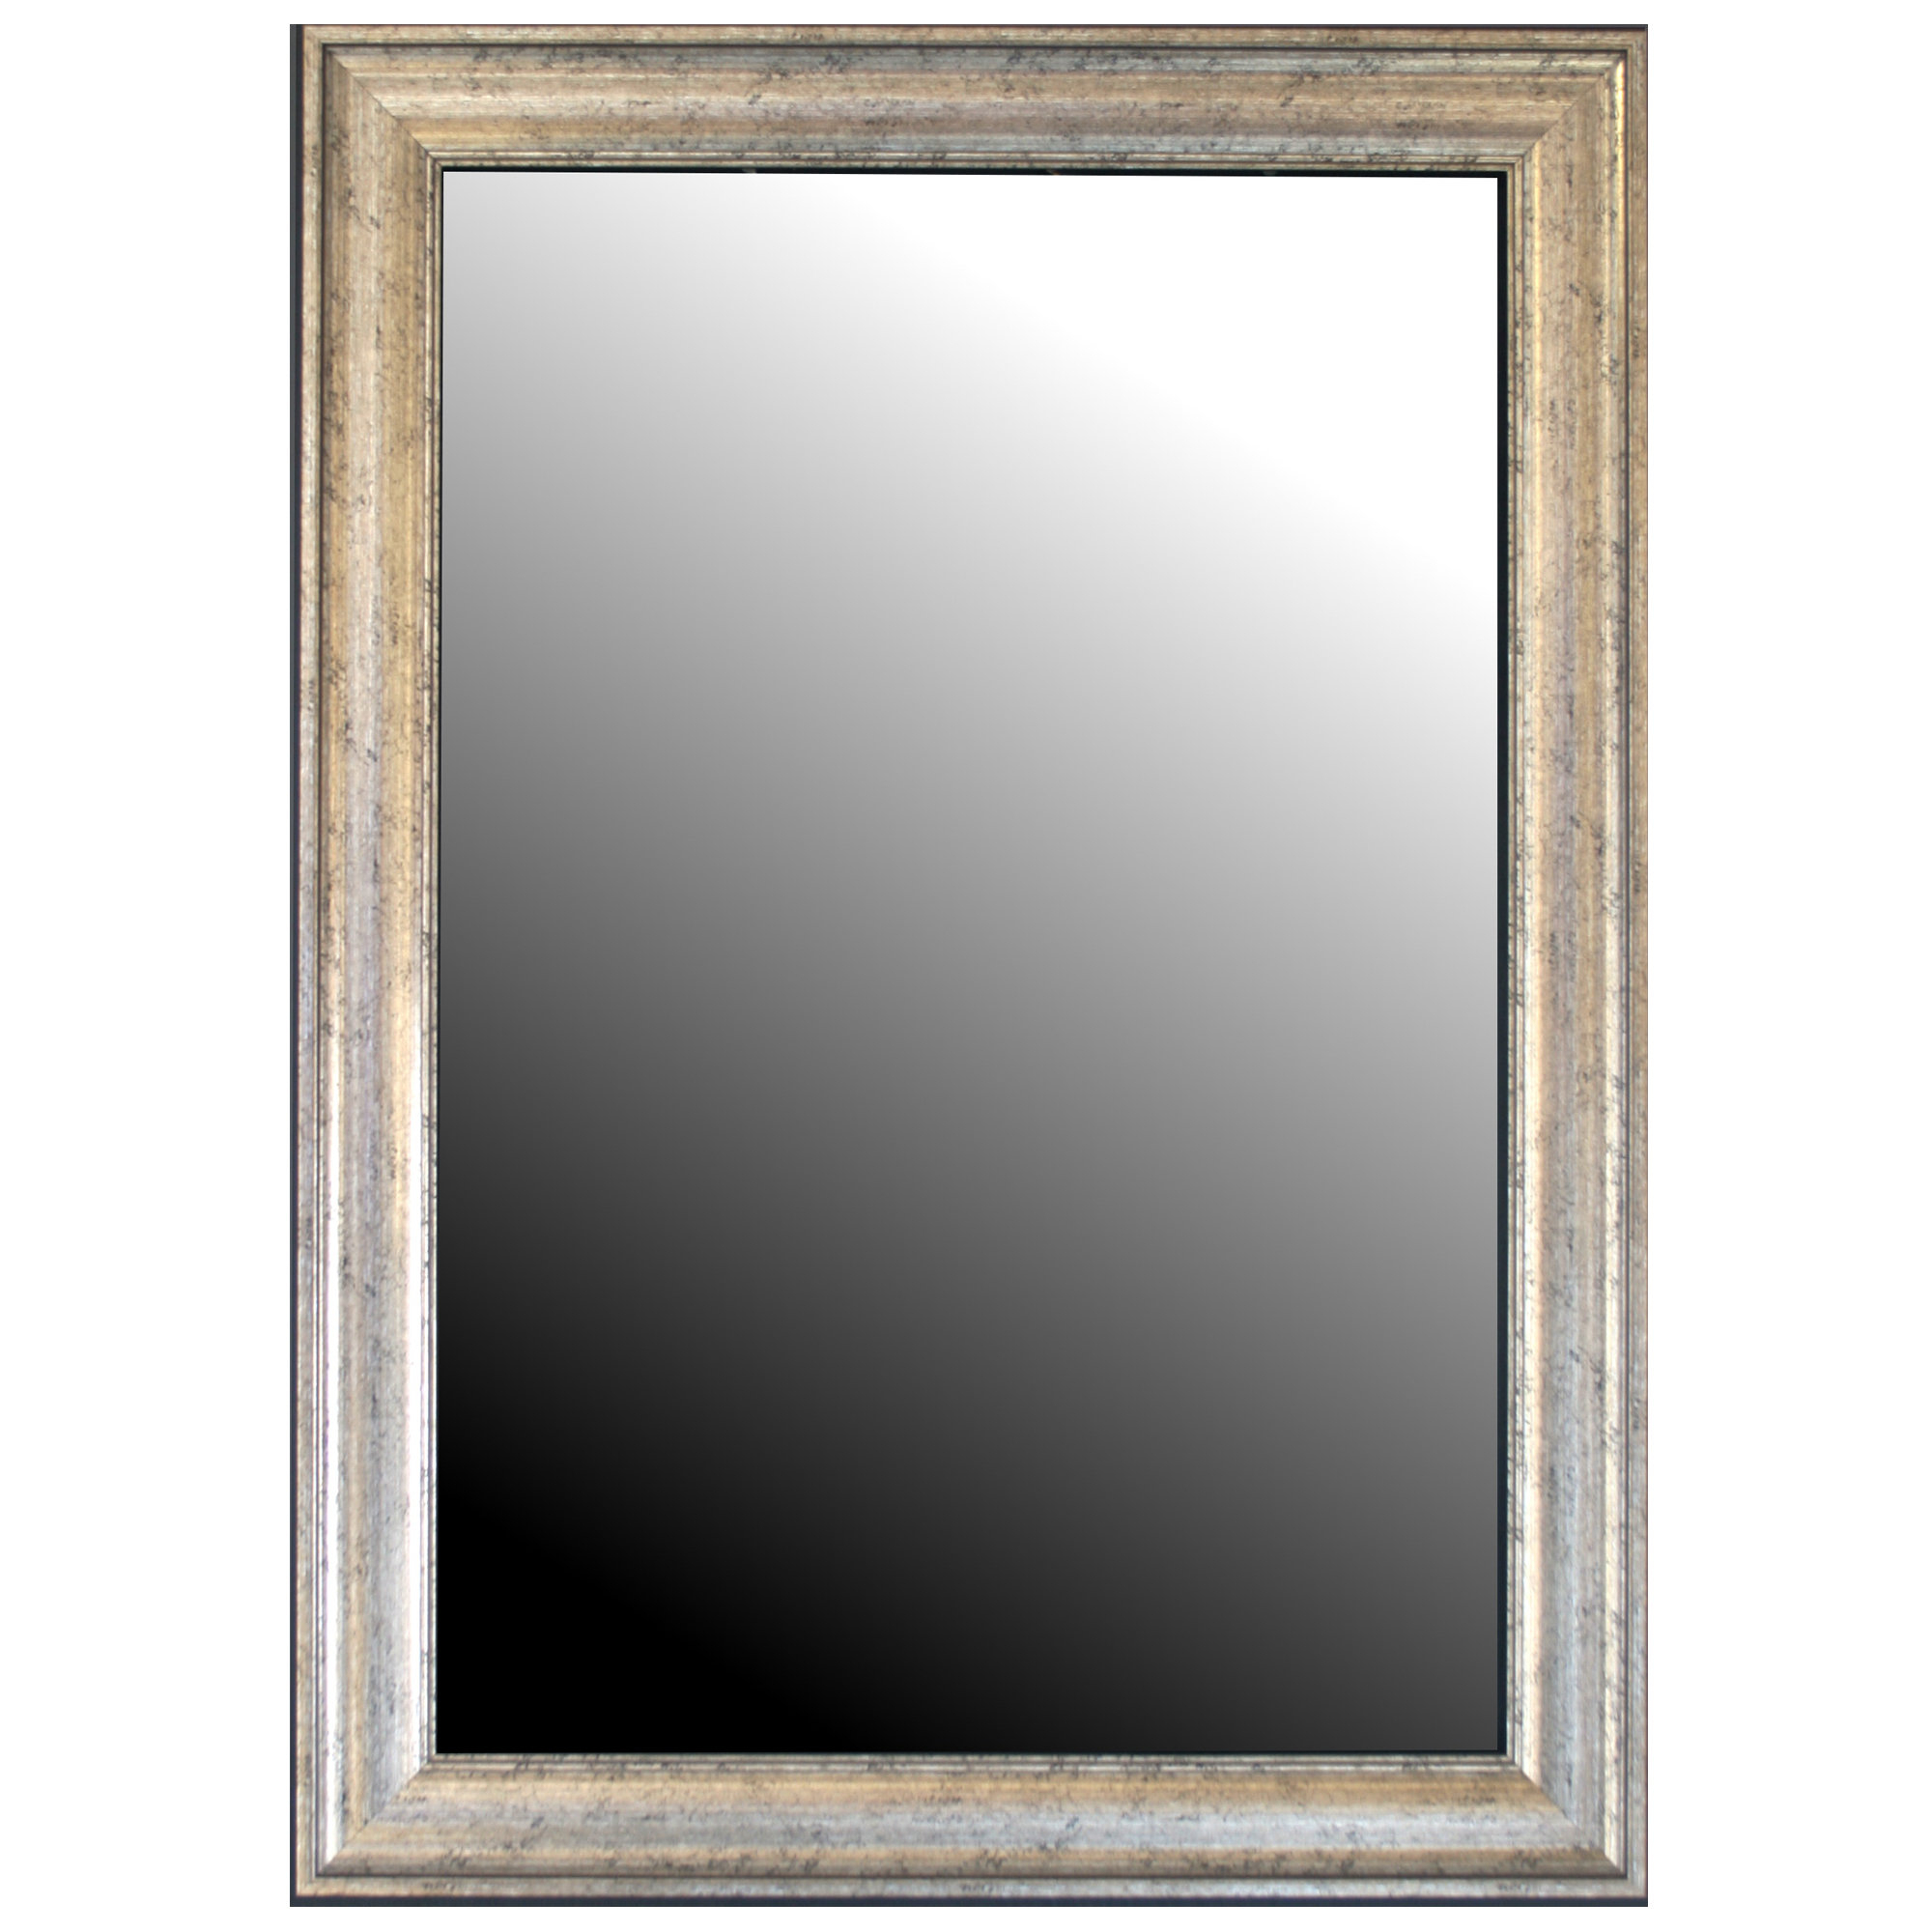 Curren Vintage Beveled Silver Wall Mirror Within Hilde Traditional Beveled Bathroom Mirrors (Image 6 of 20)